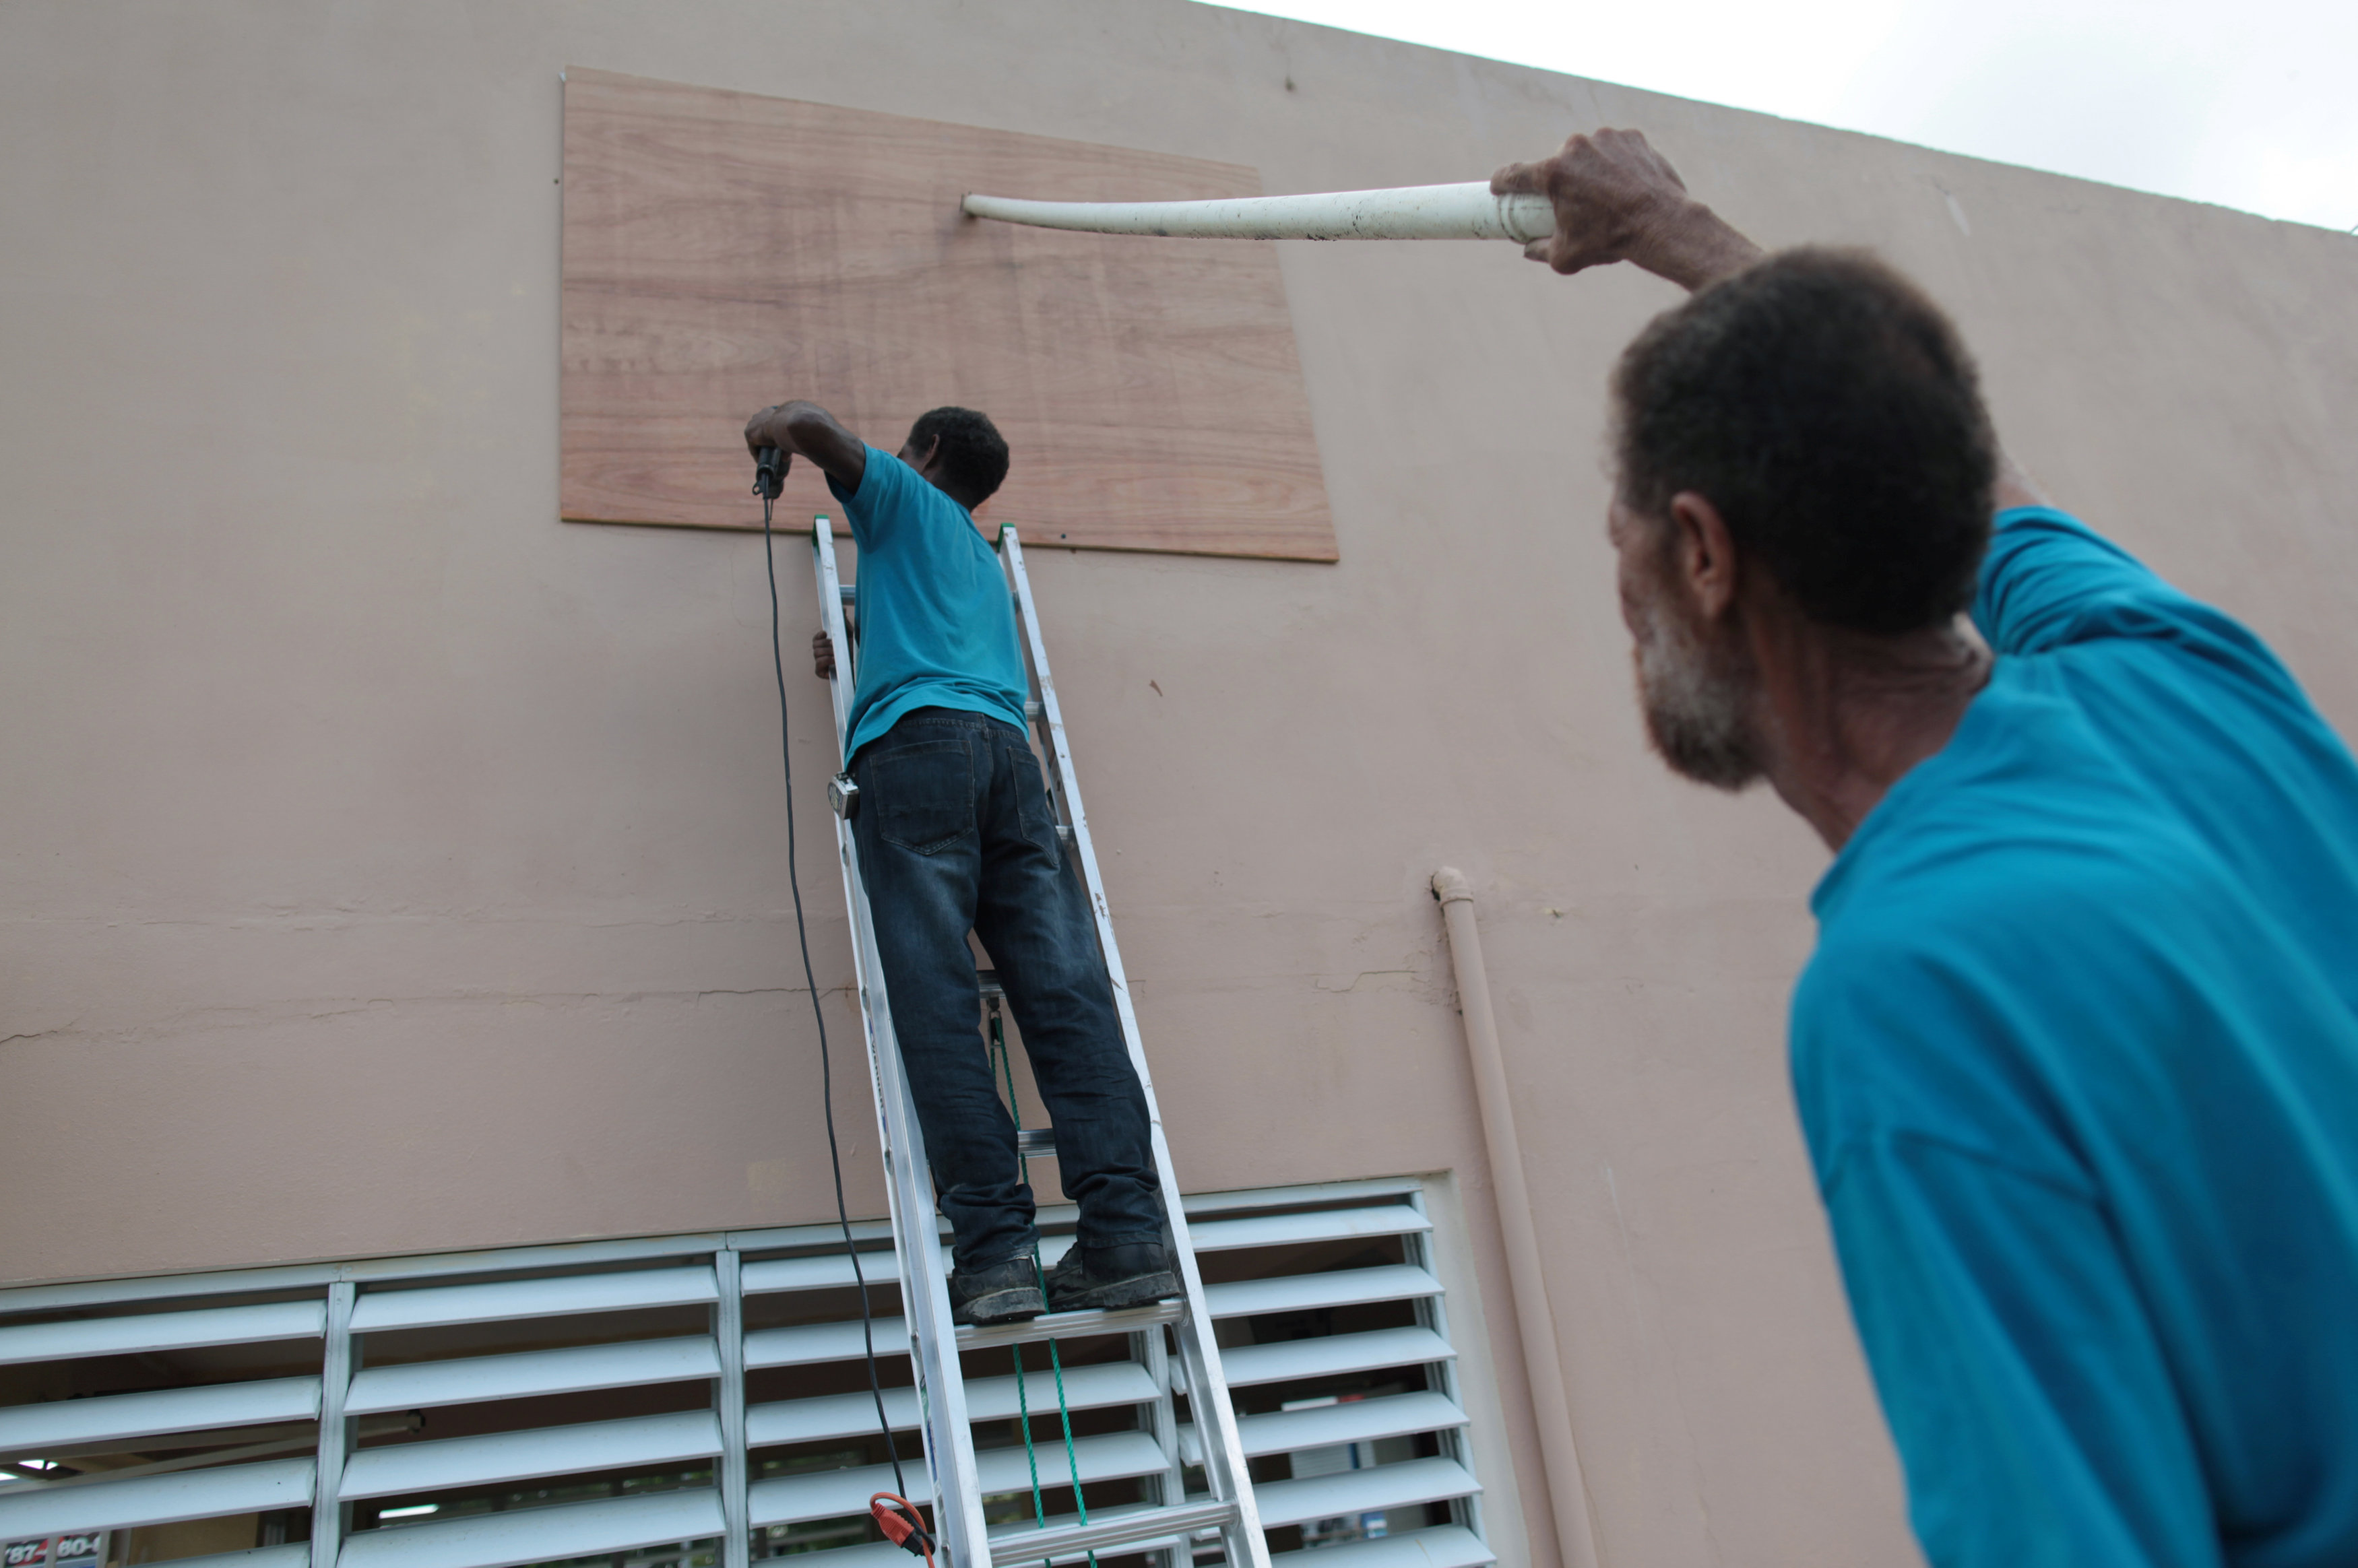 Men cover the window of a house in preparation for Hurricane Irma, in Toa Baja, Puerto Rico on Sept. 5, 2017.  (REUTERS/Alvin Baez)